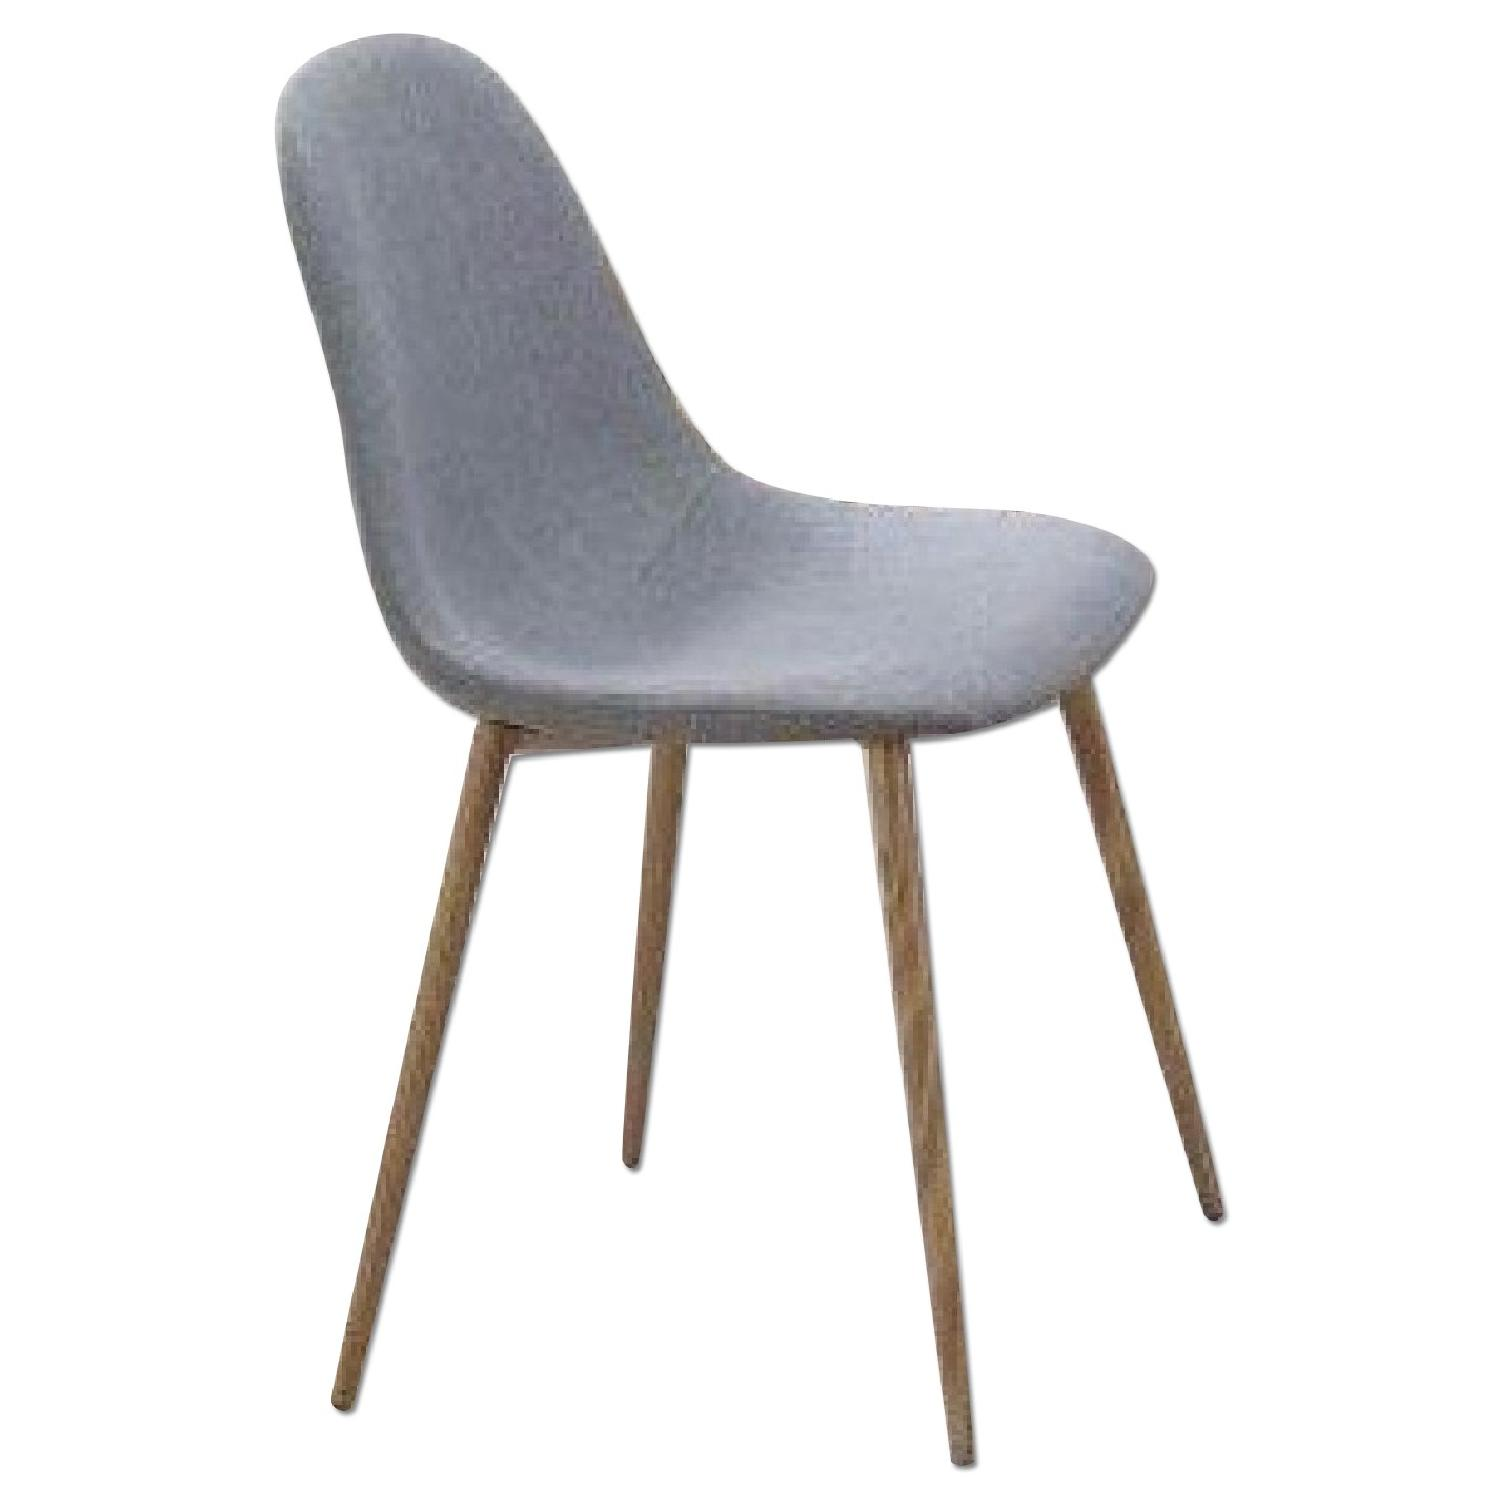 Woven Dining Chair Dining Chair Upholstered In Grey Woven Fabric